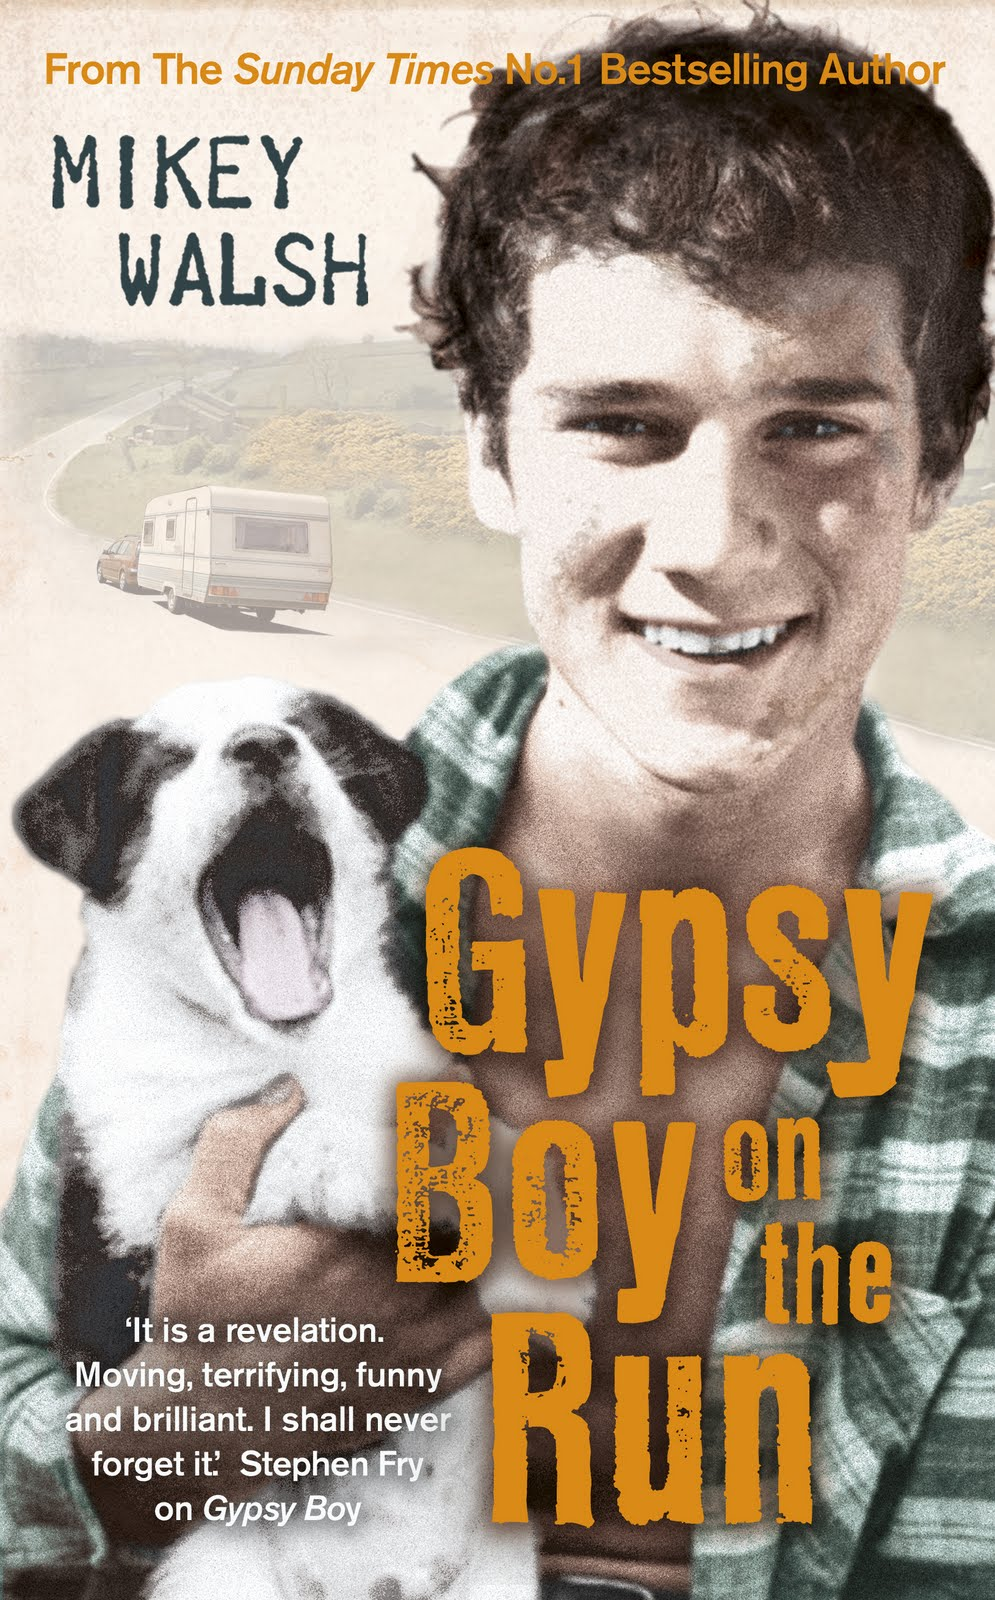 Gypsy%2BBoy%2Bon%2Bthe%2BRun%2B %2BHi Res%2BHB%2Bjacket Gypsy boy Mikey Walsh is back to share in stories of his troubled teens and ...